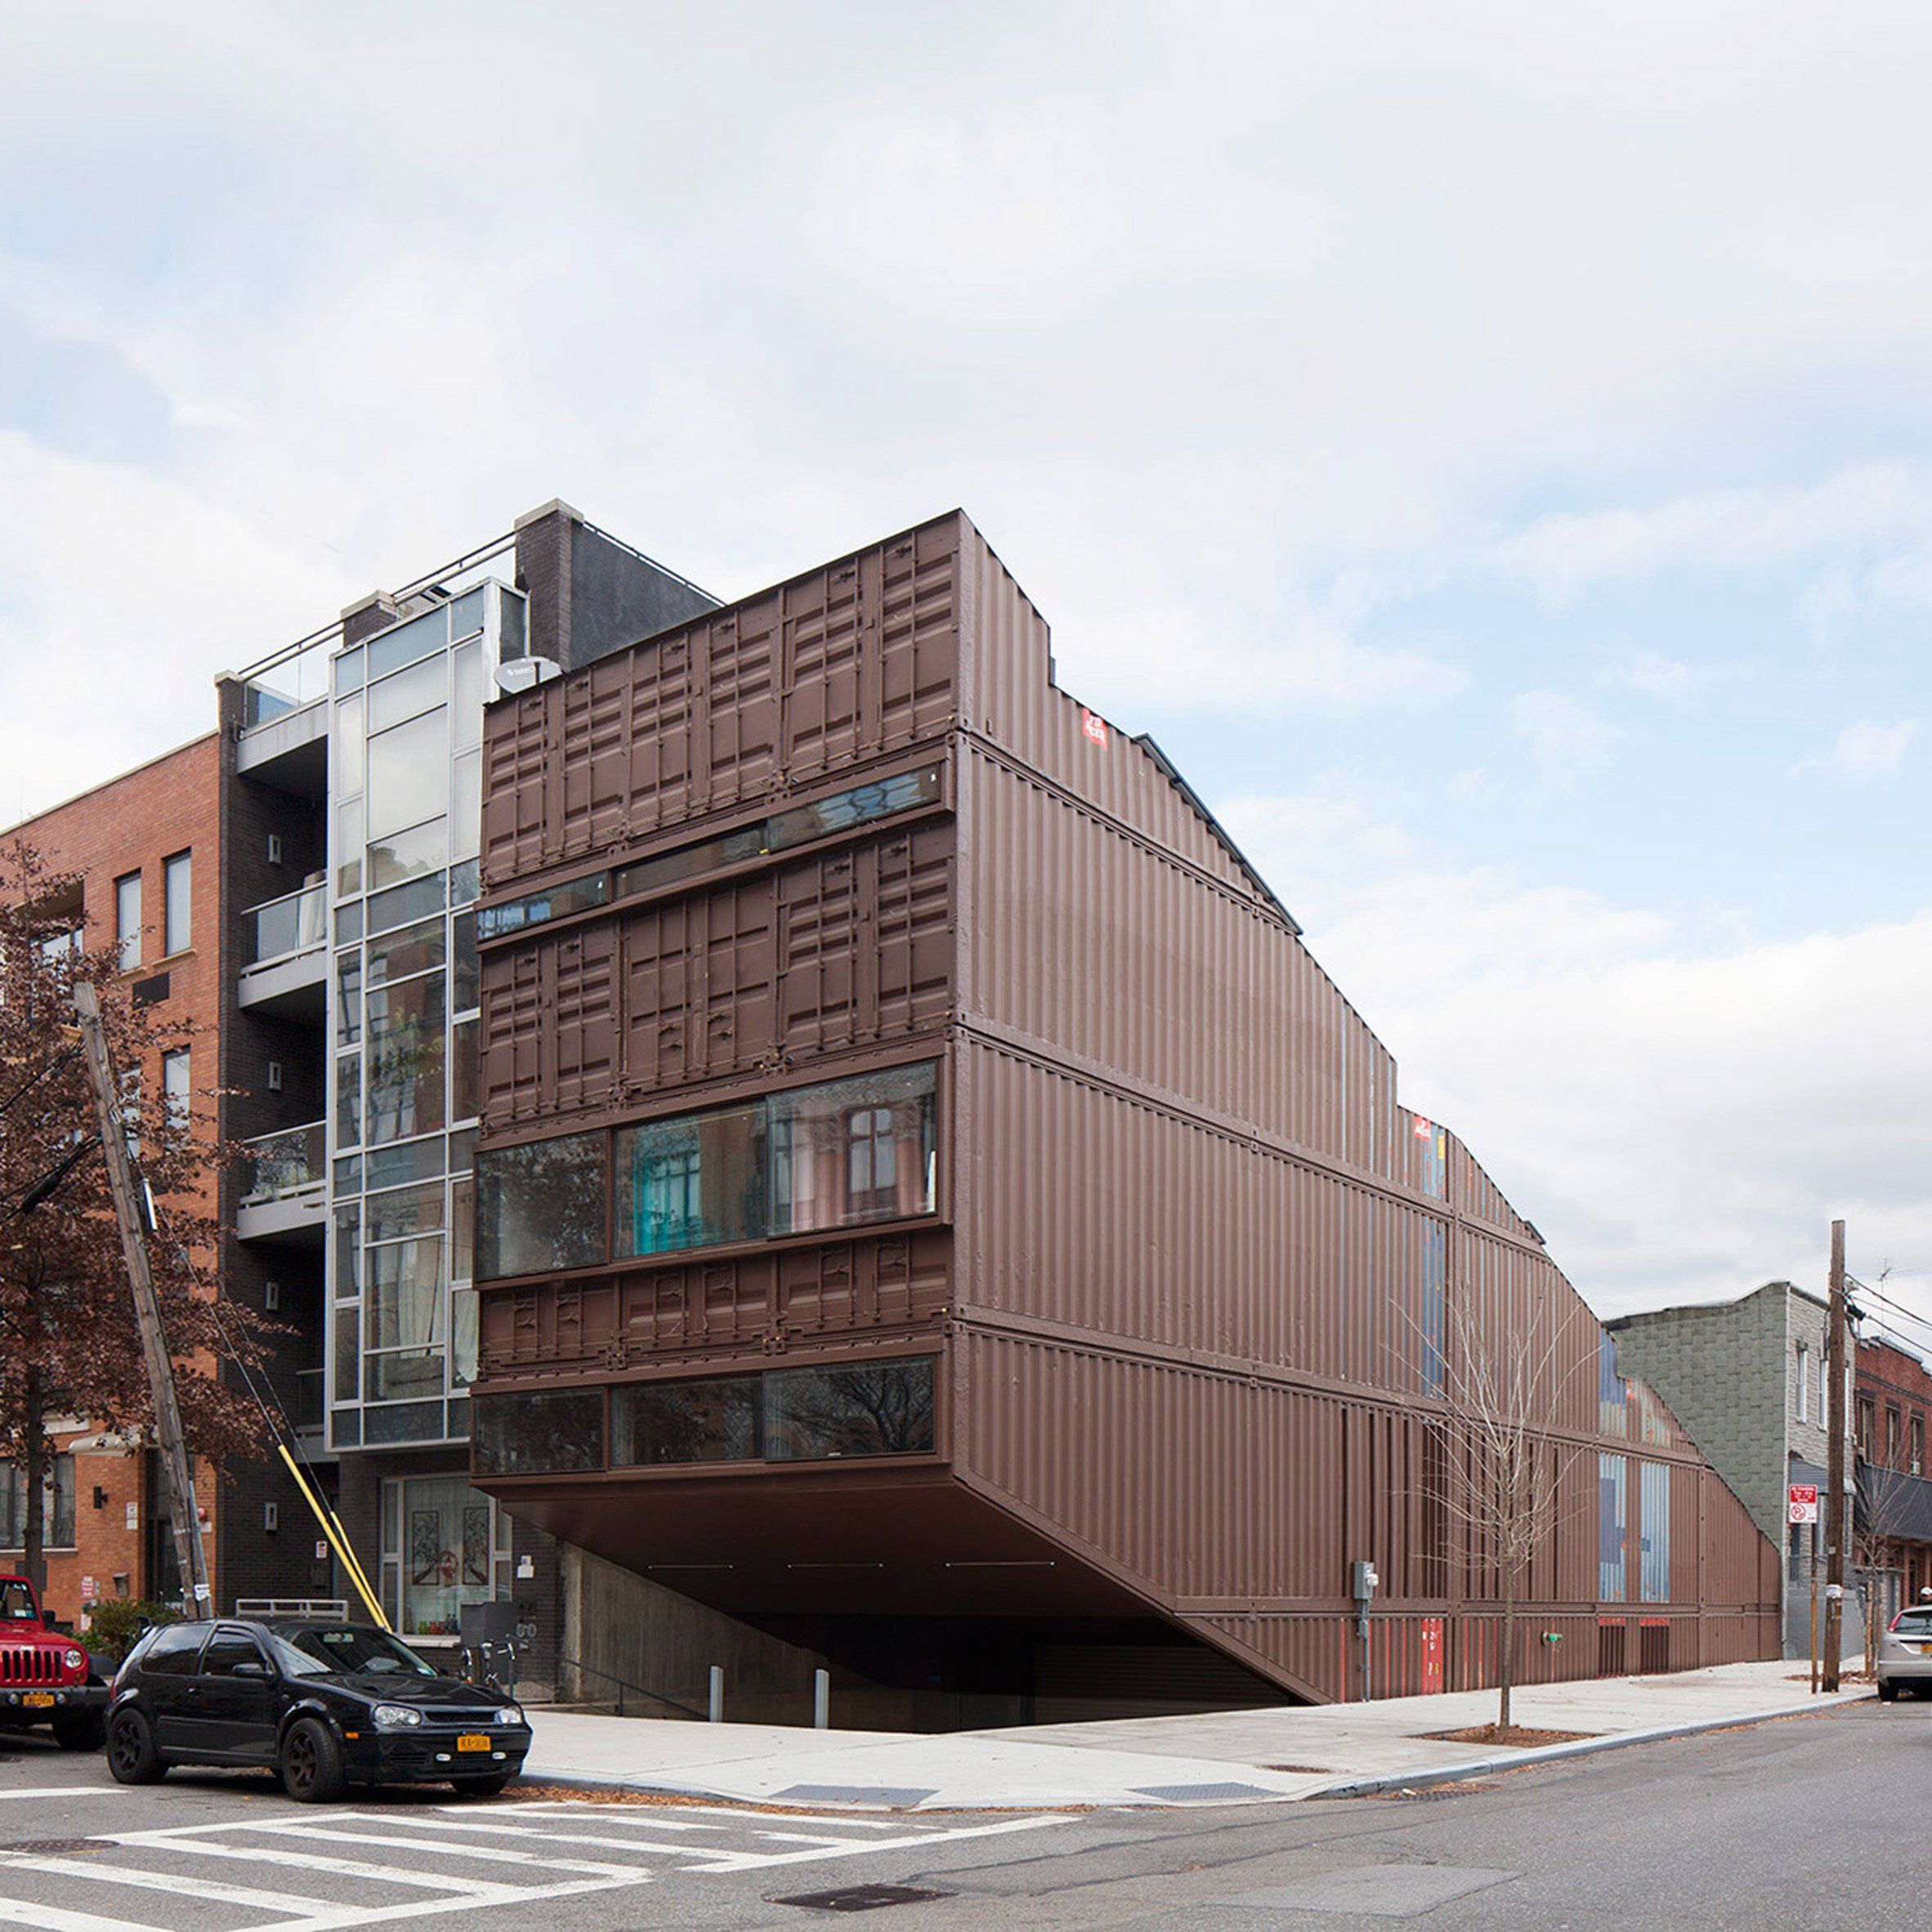 Images From Container Architecture: Lot-Ek Has Built A Family Home In Brooklyn By Stacking